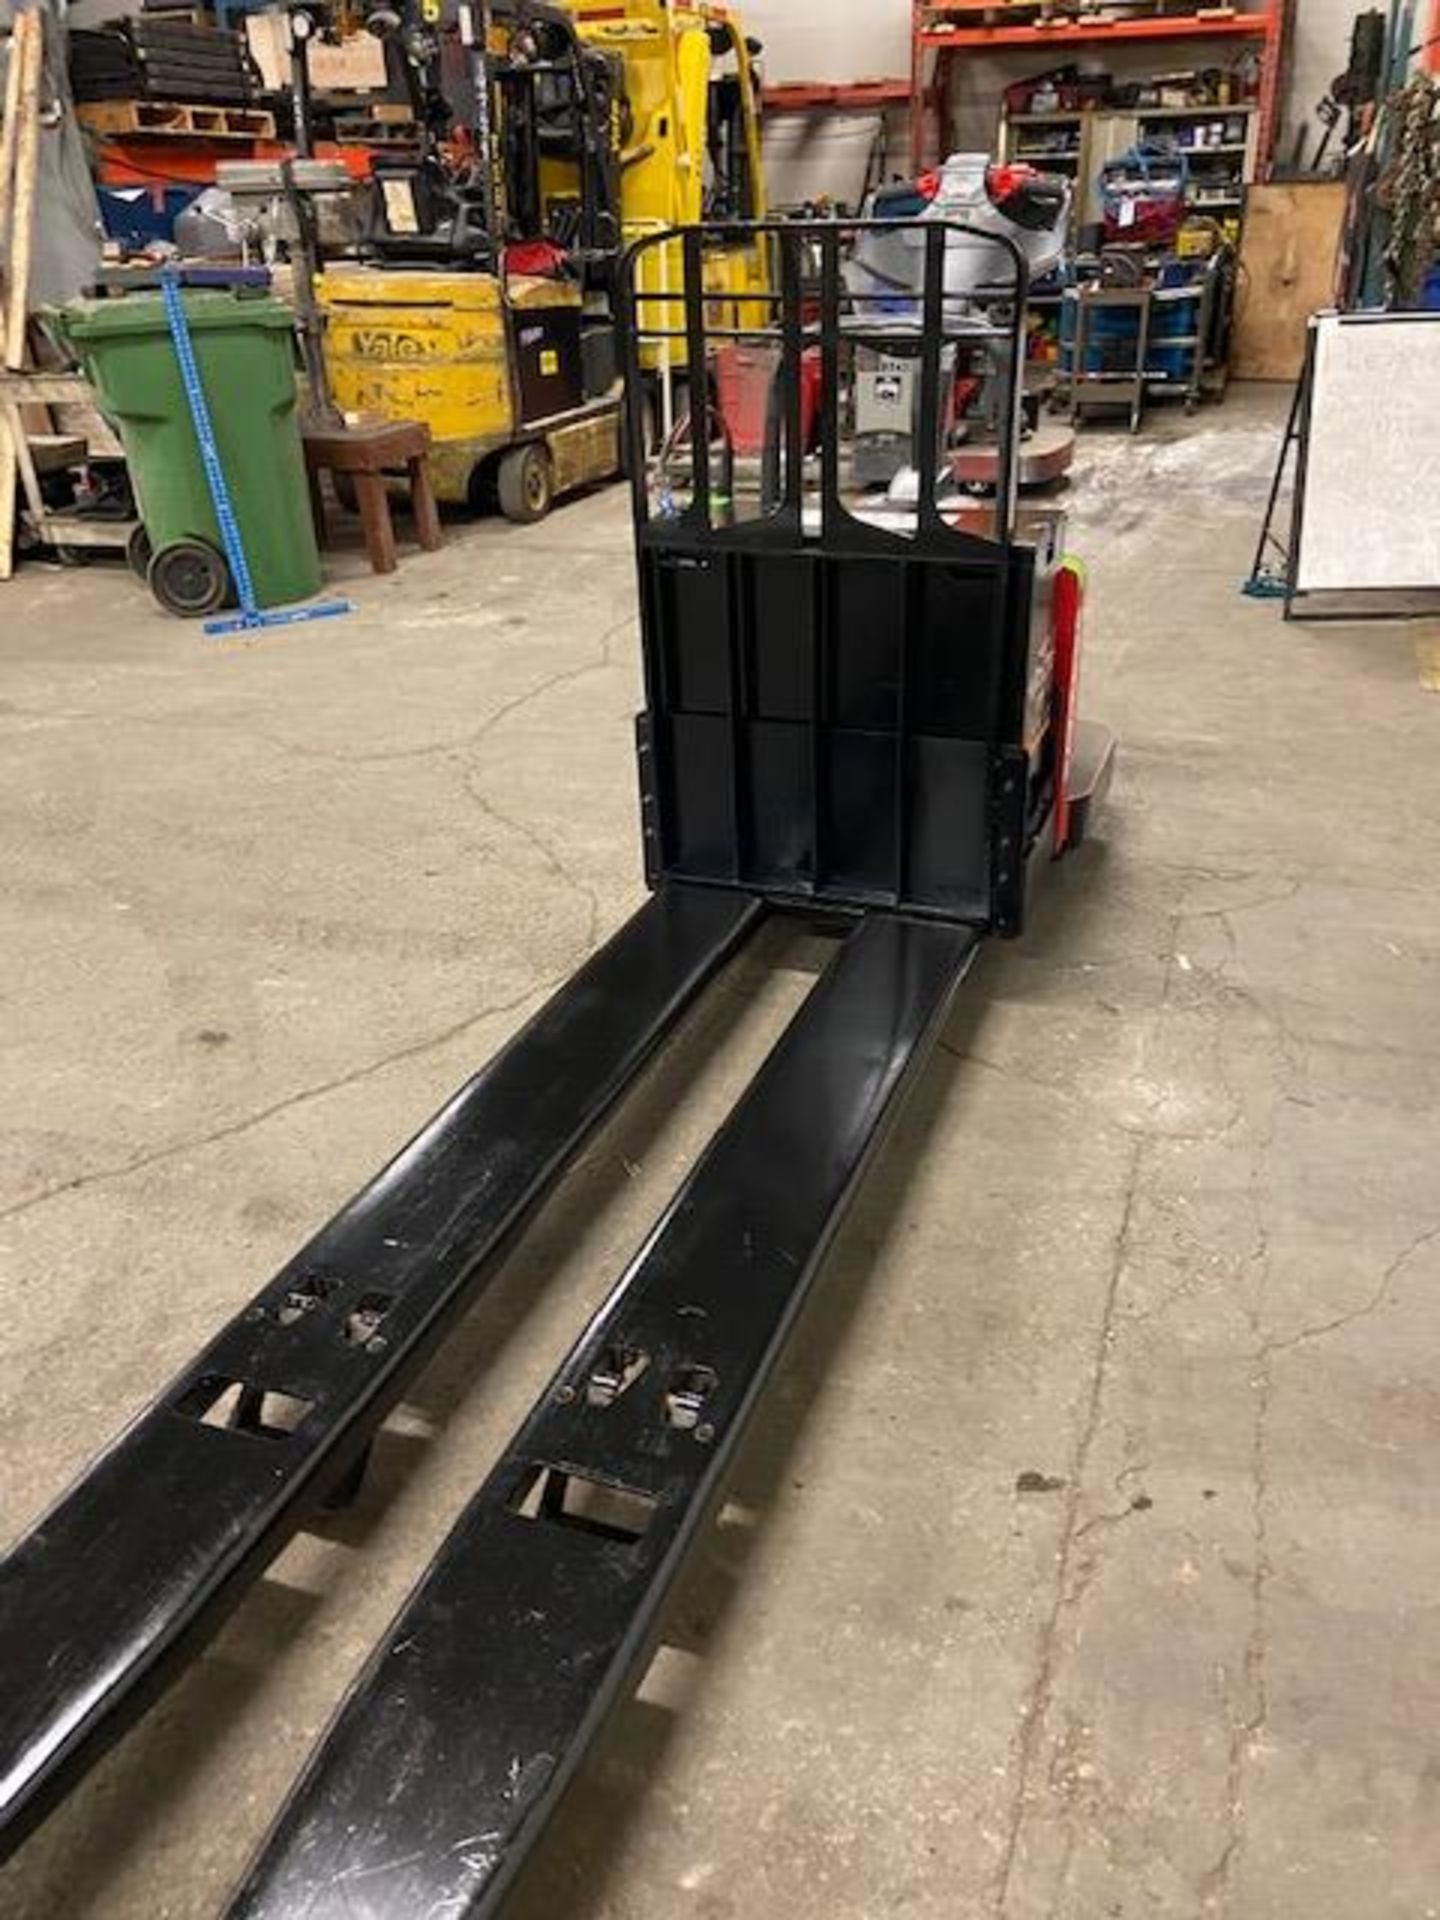 2012 Raymond Electric Ride on Powered Pallet Cart Lift 8000lbs capacity 8' Long LOW HOURS - Image 2 of 3